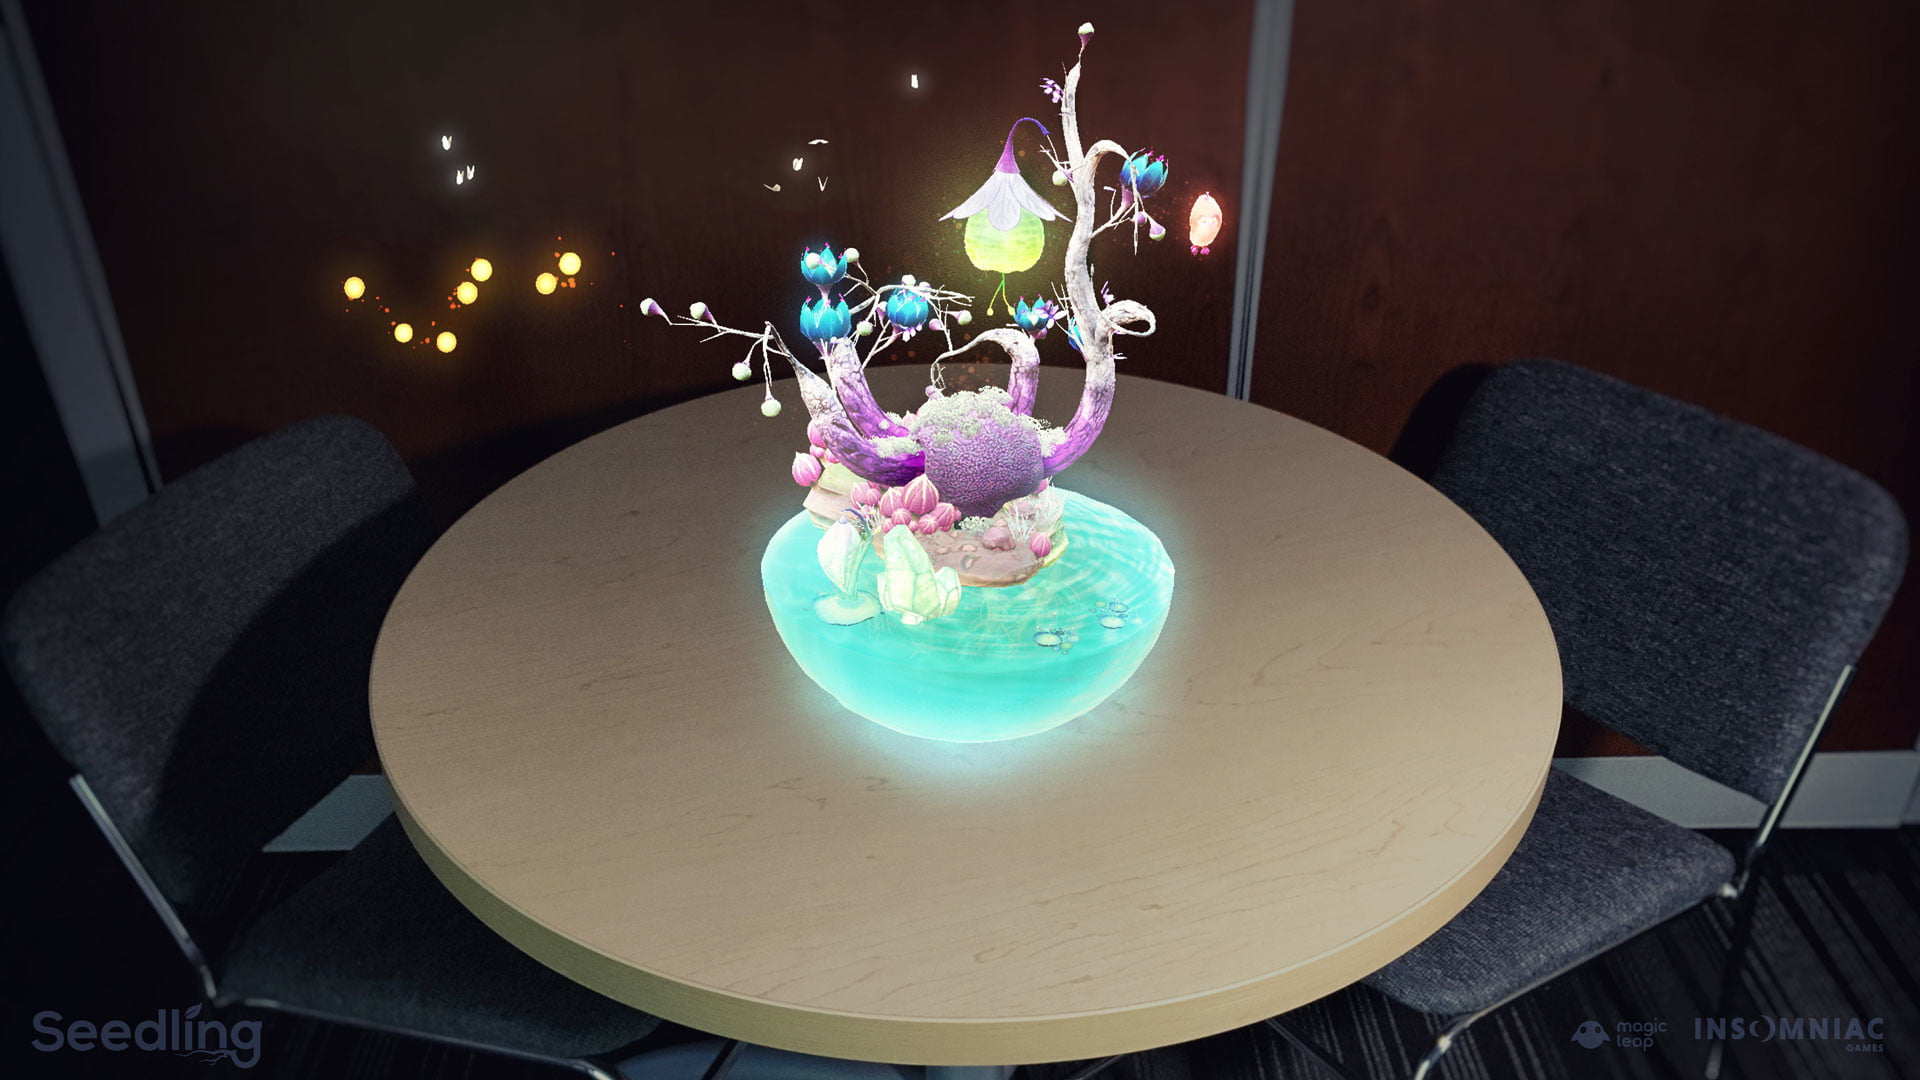 seedling magic leap experience screen03